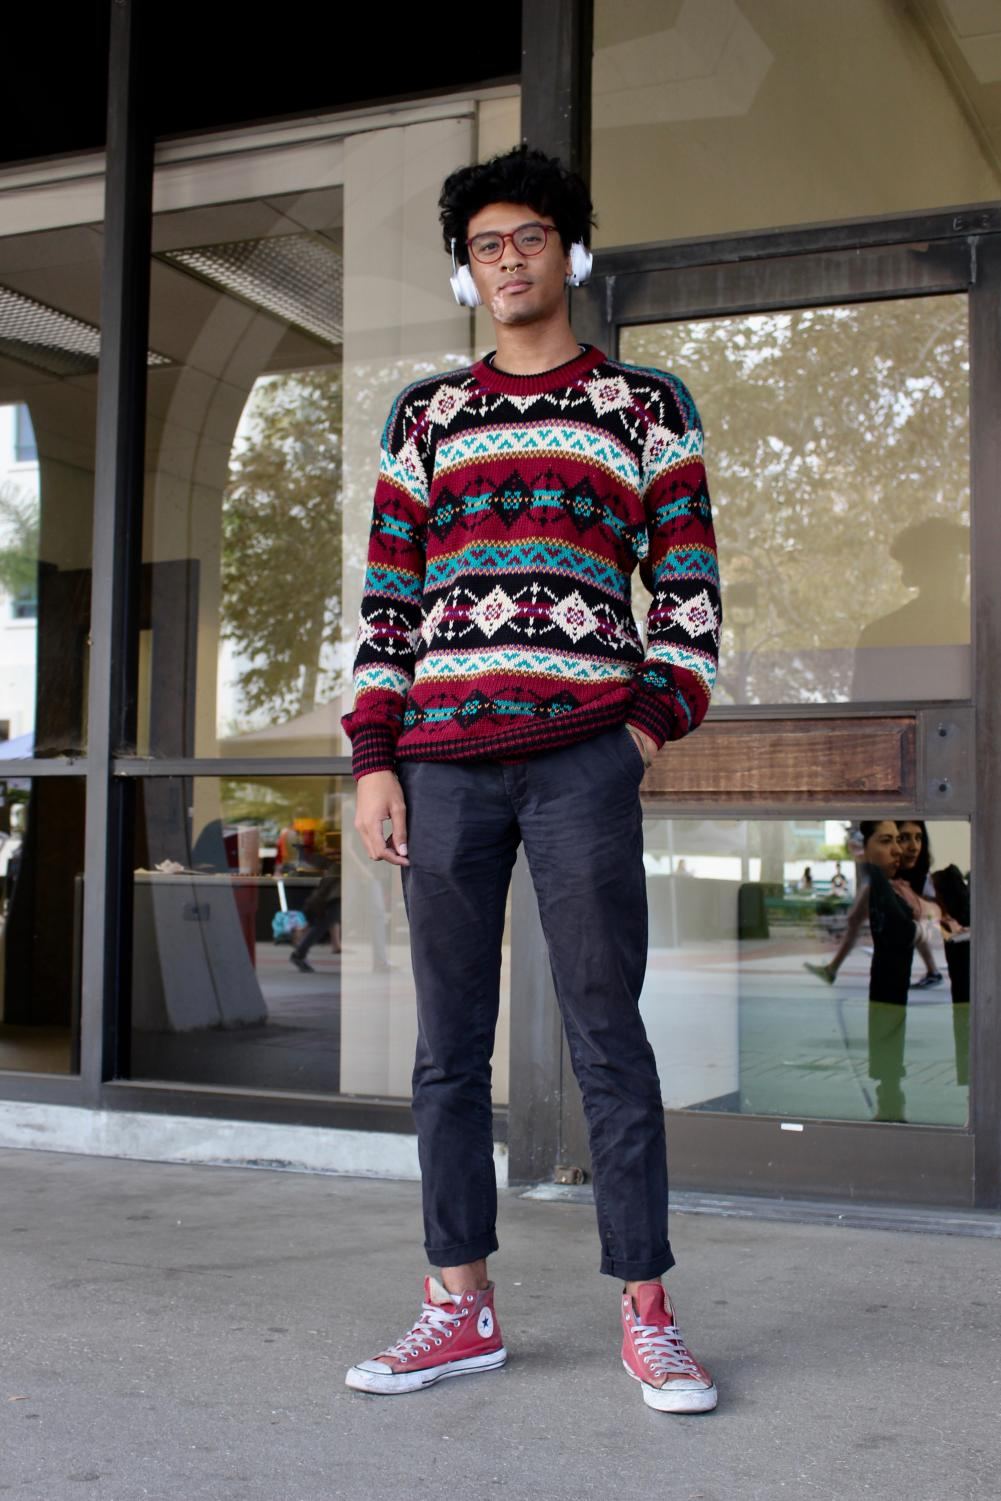 Yuuki Rosby's sweater weather style shines at state with his mix of cozy, customized and thrifted looks.